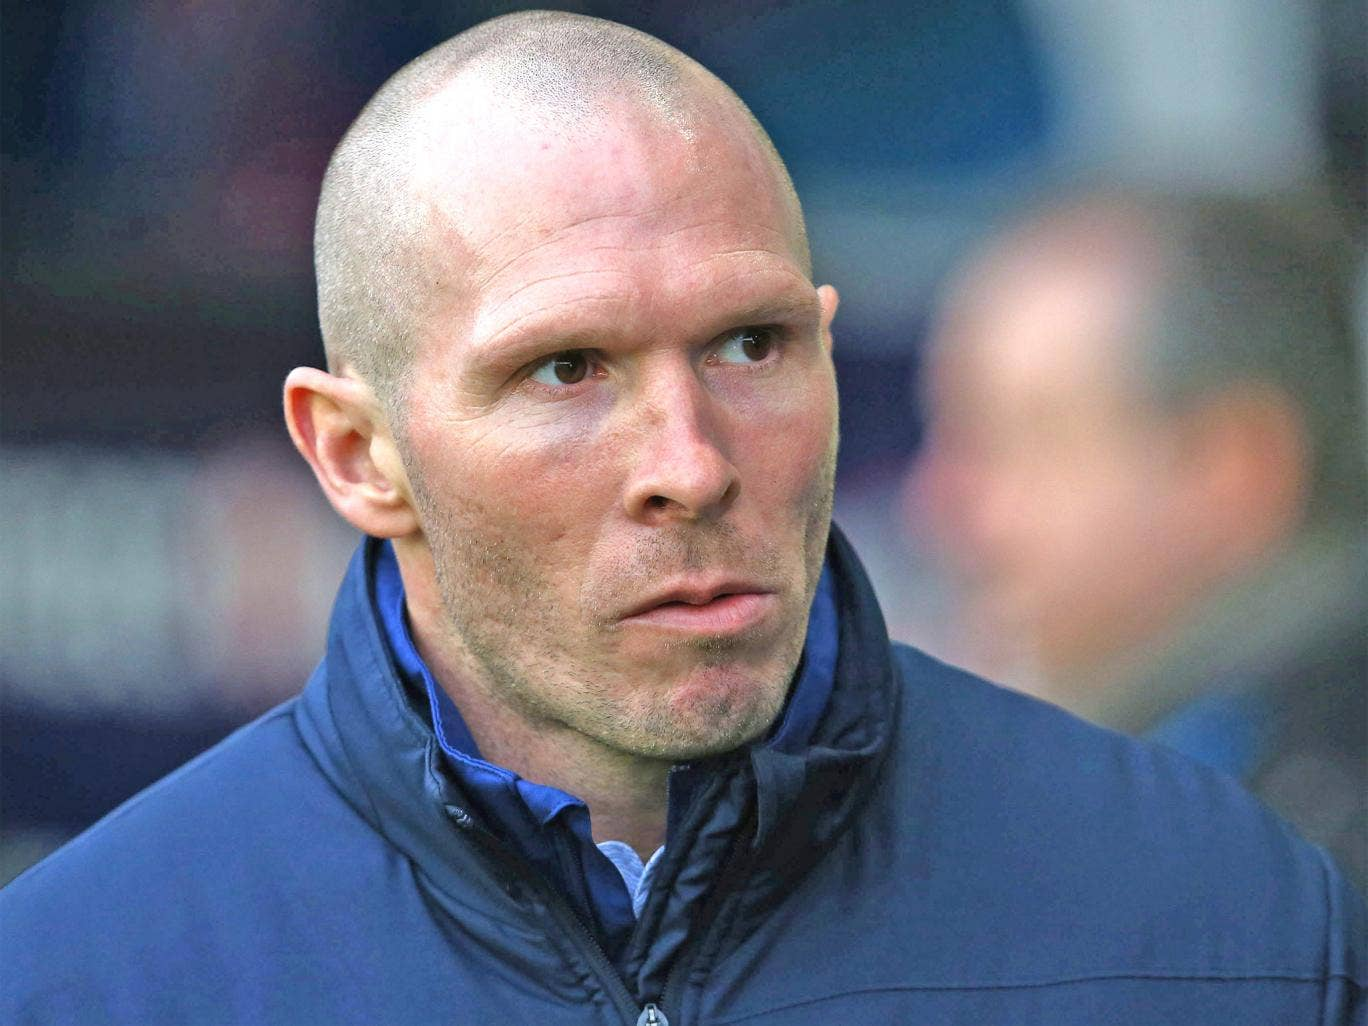 Michael Appleton was sacked by Blackburn on 19 March but still has no pay-off agreement